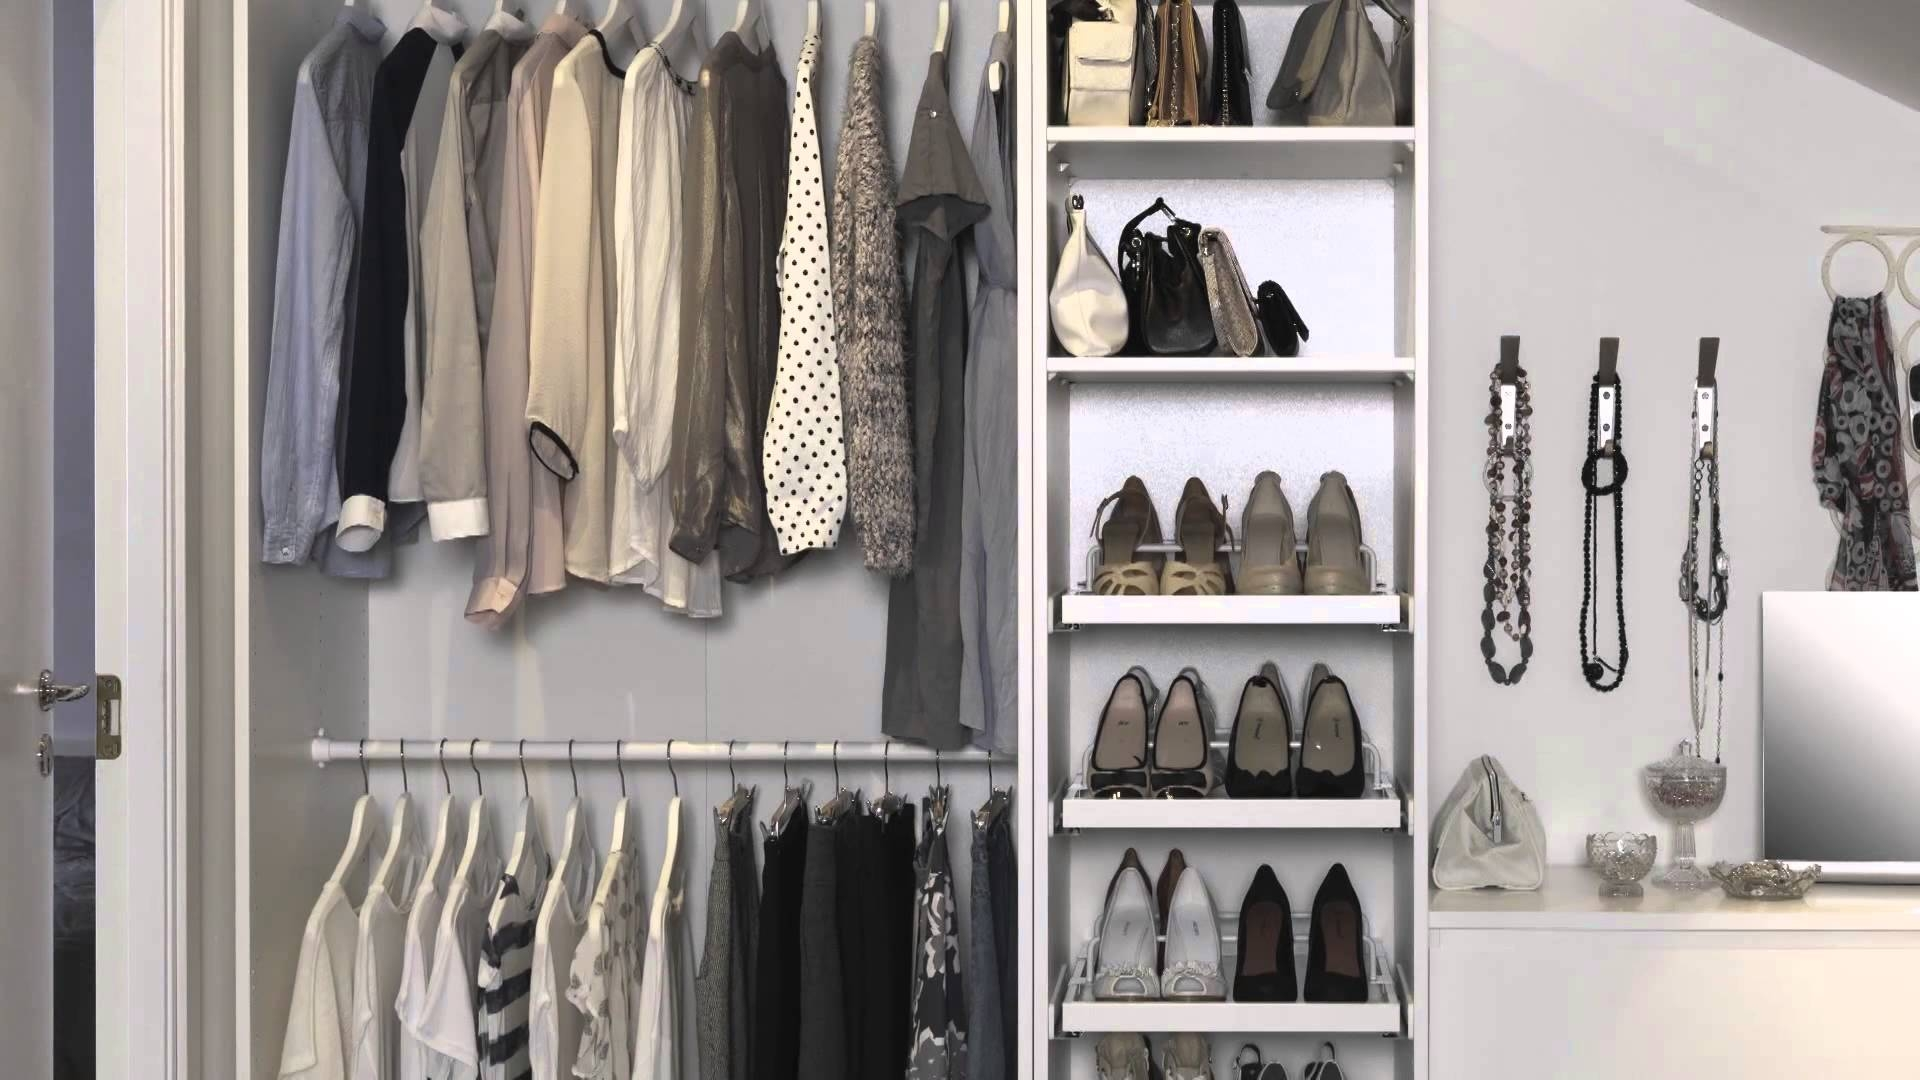 Flexible Clothing Storage Ikea Home Tour Youtube With Regard To Wardrobe Hangers Storages (Image 18 of 25)